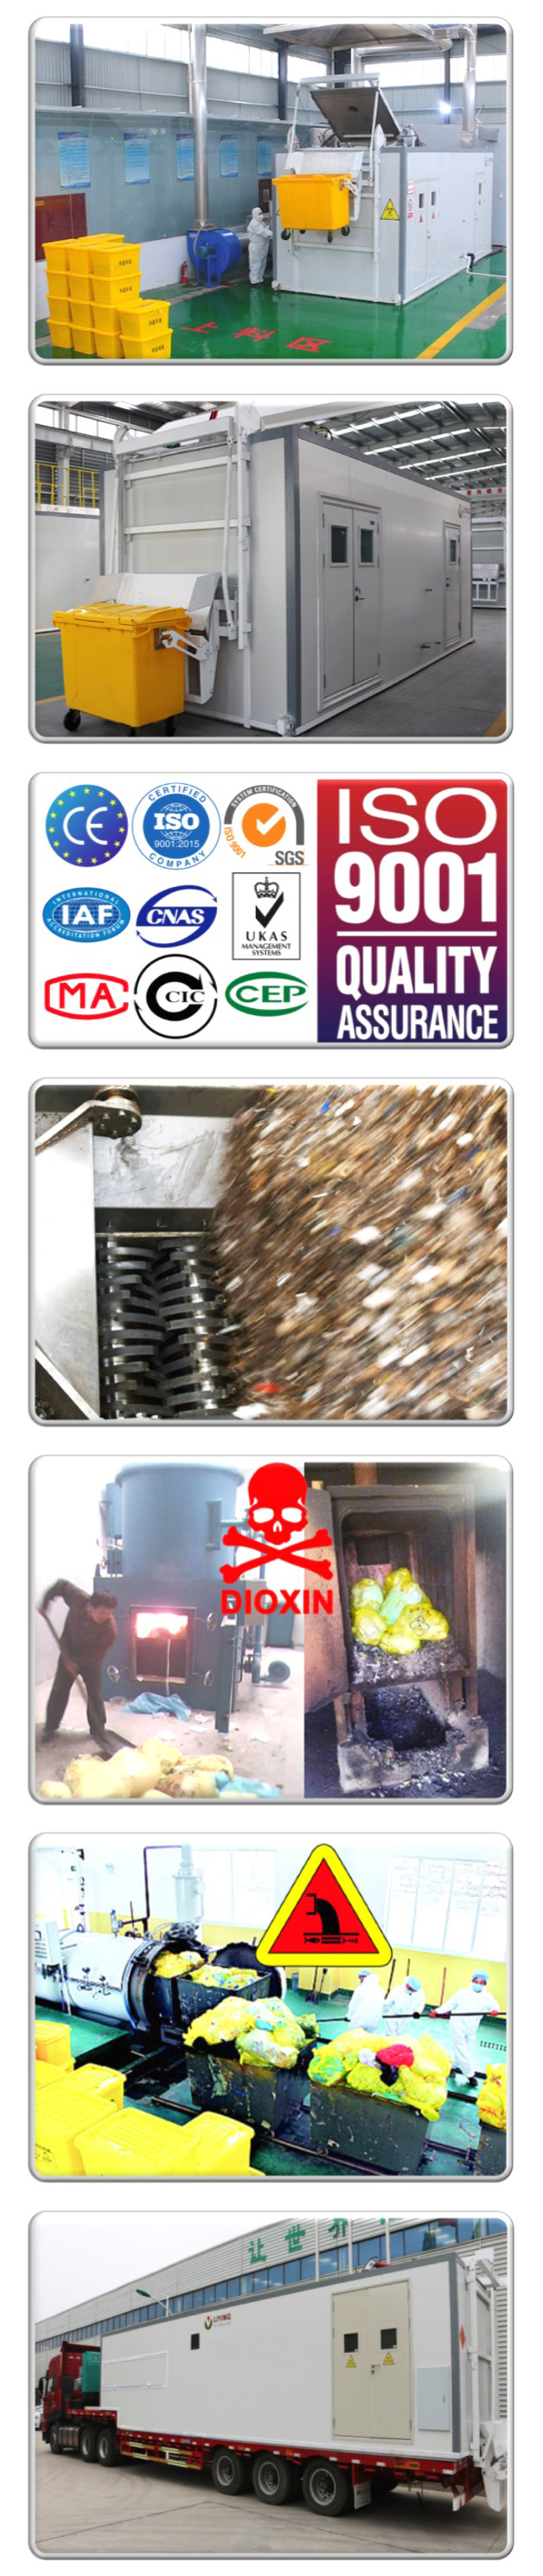 Characteristics of microwave disinfection